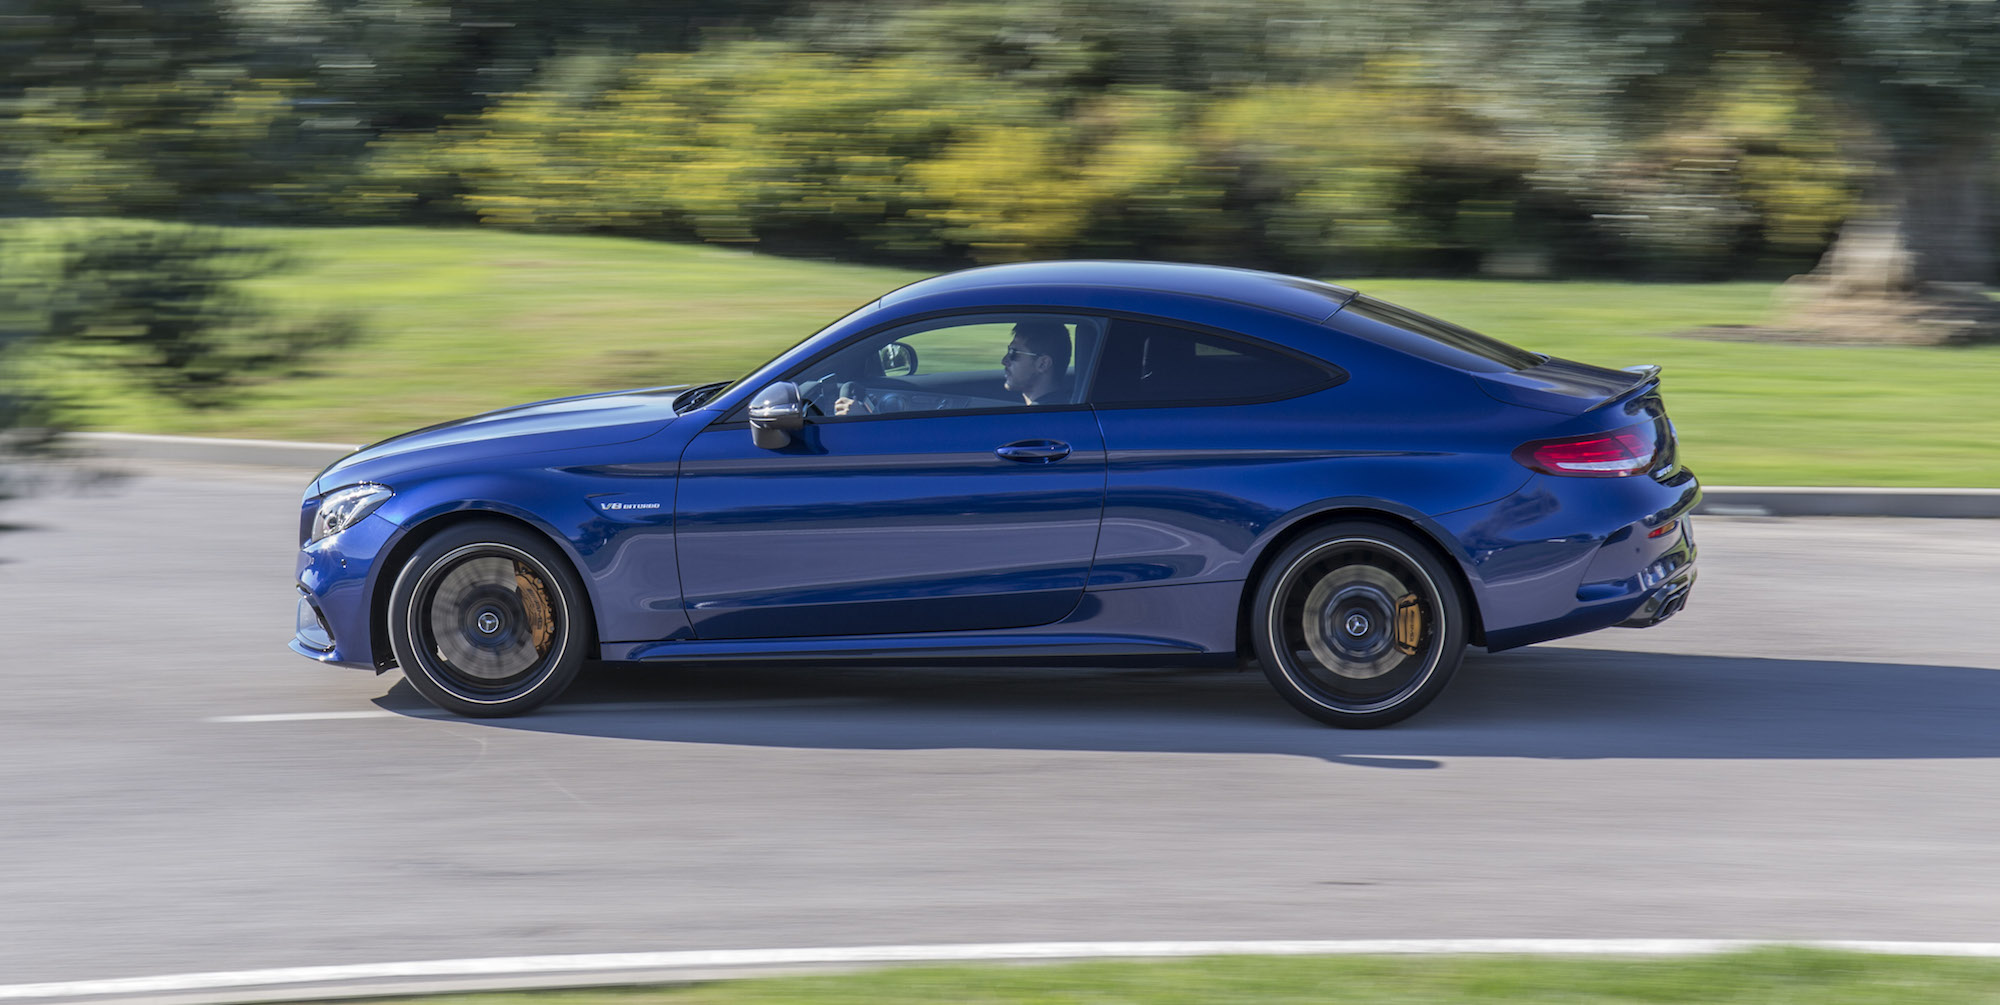 2016 Mercedes-AMG C63 S Coupe Review - photos | CarAdvice